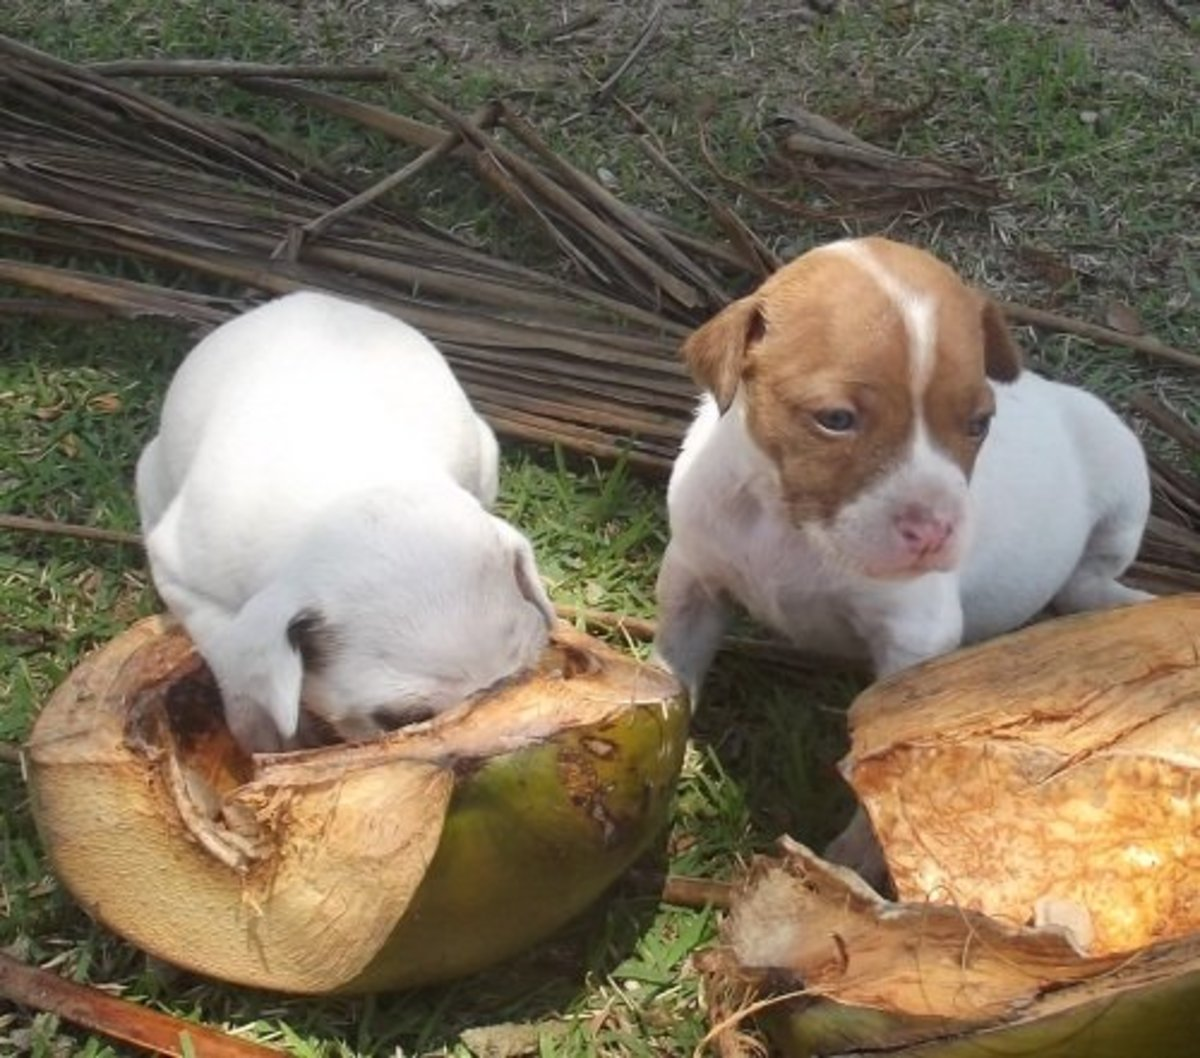 Most puppies agree: coconut water tastes good.